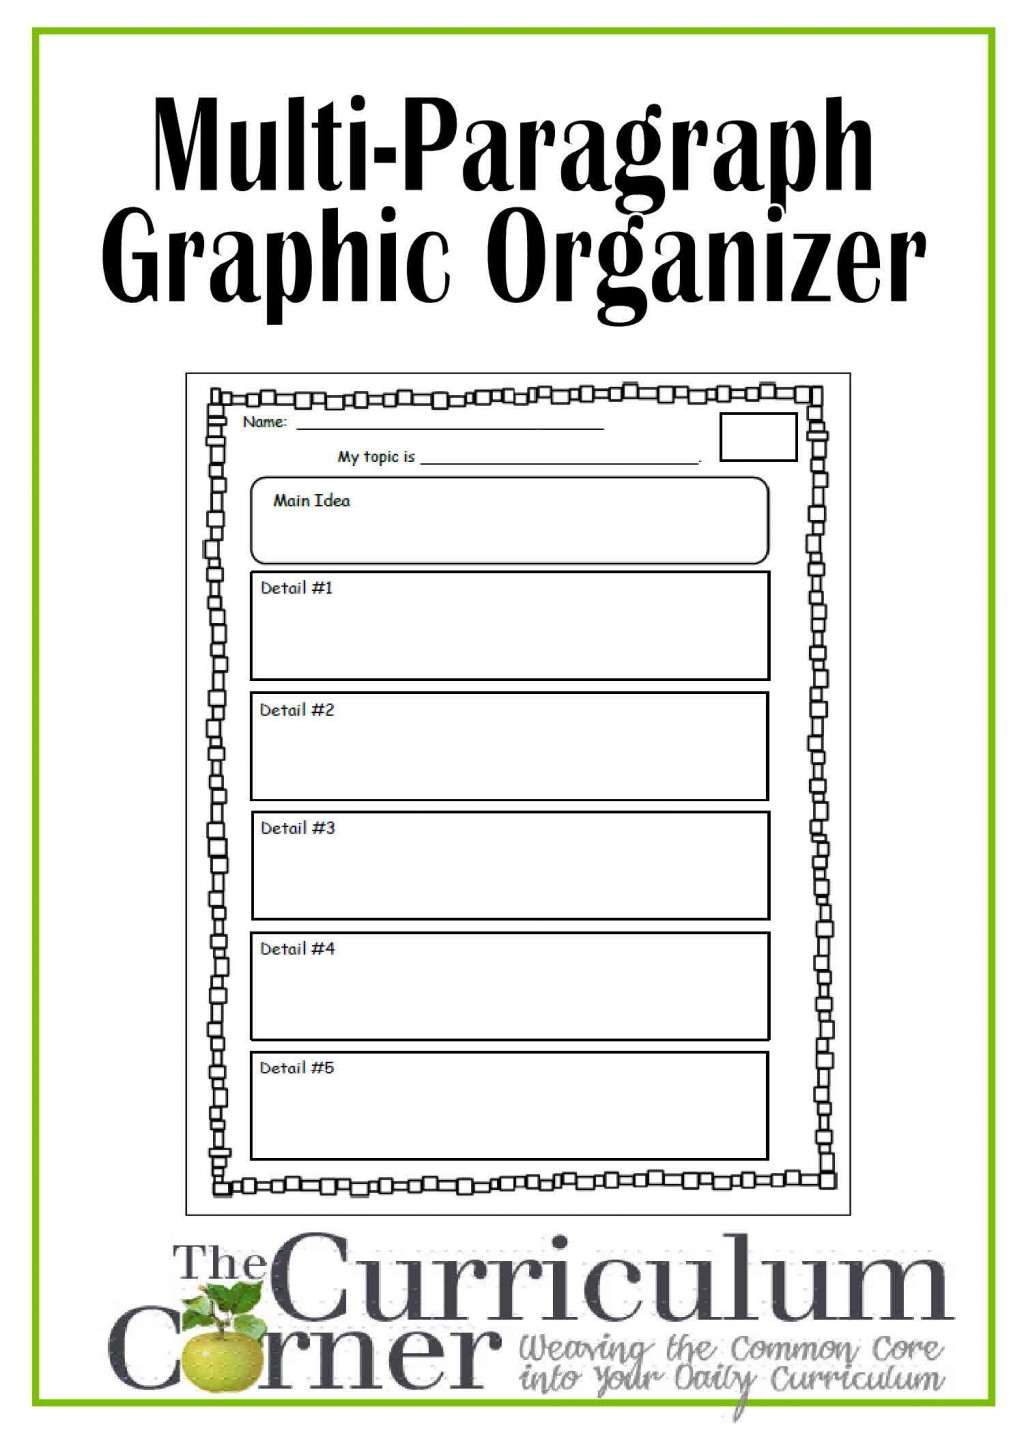 001 Research Paper Graphic Organizer Marvelous Middle School Pdf 6th Grade 3rd Large